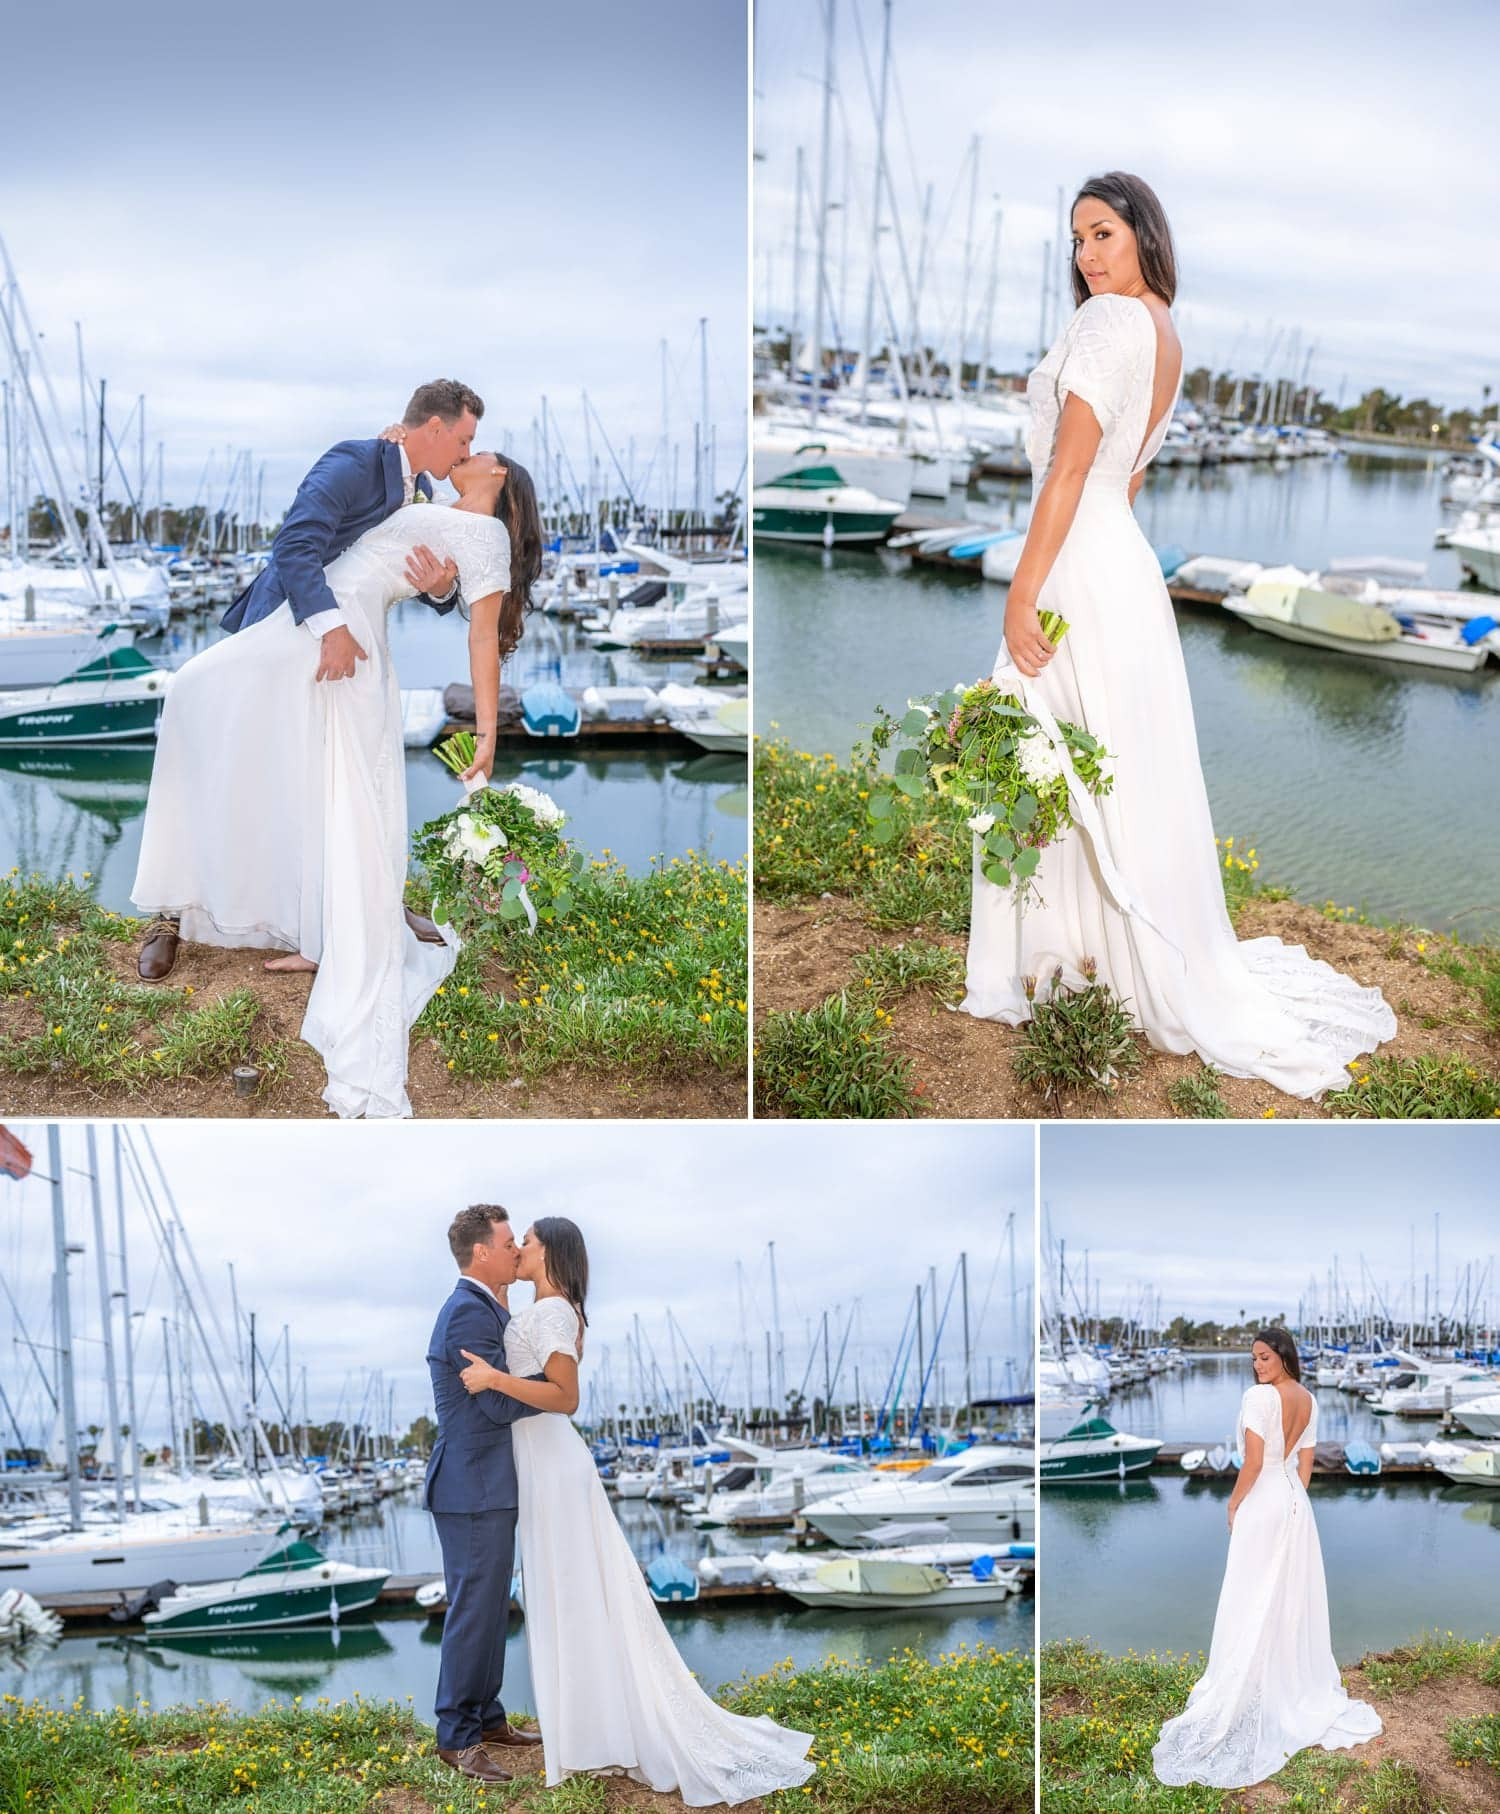 Bride and groom kissing in front of boats at Harbor View Loft.